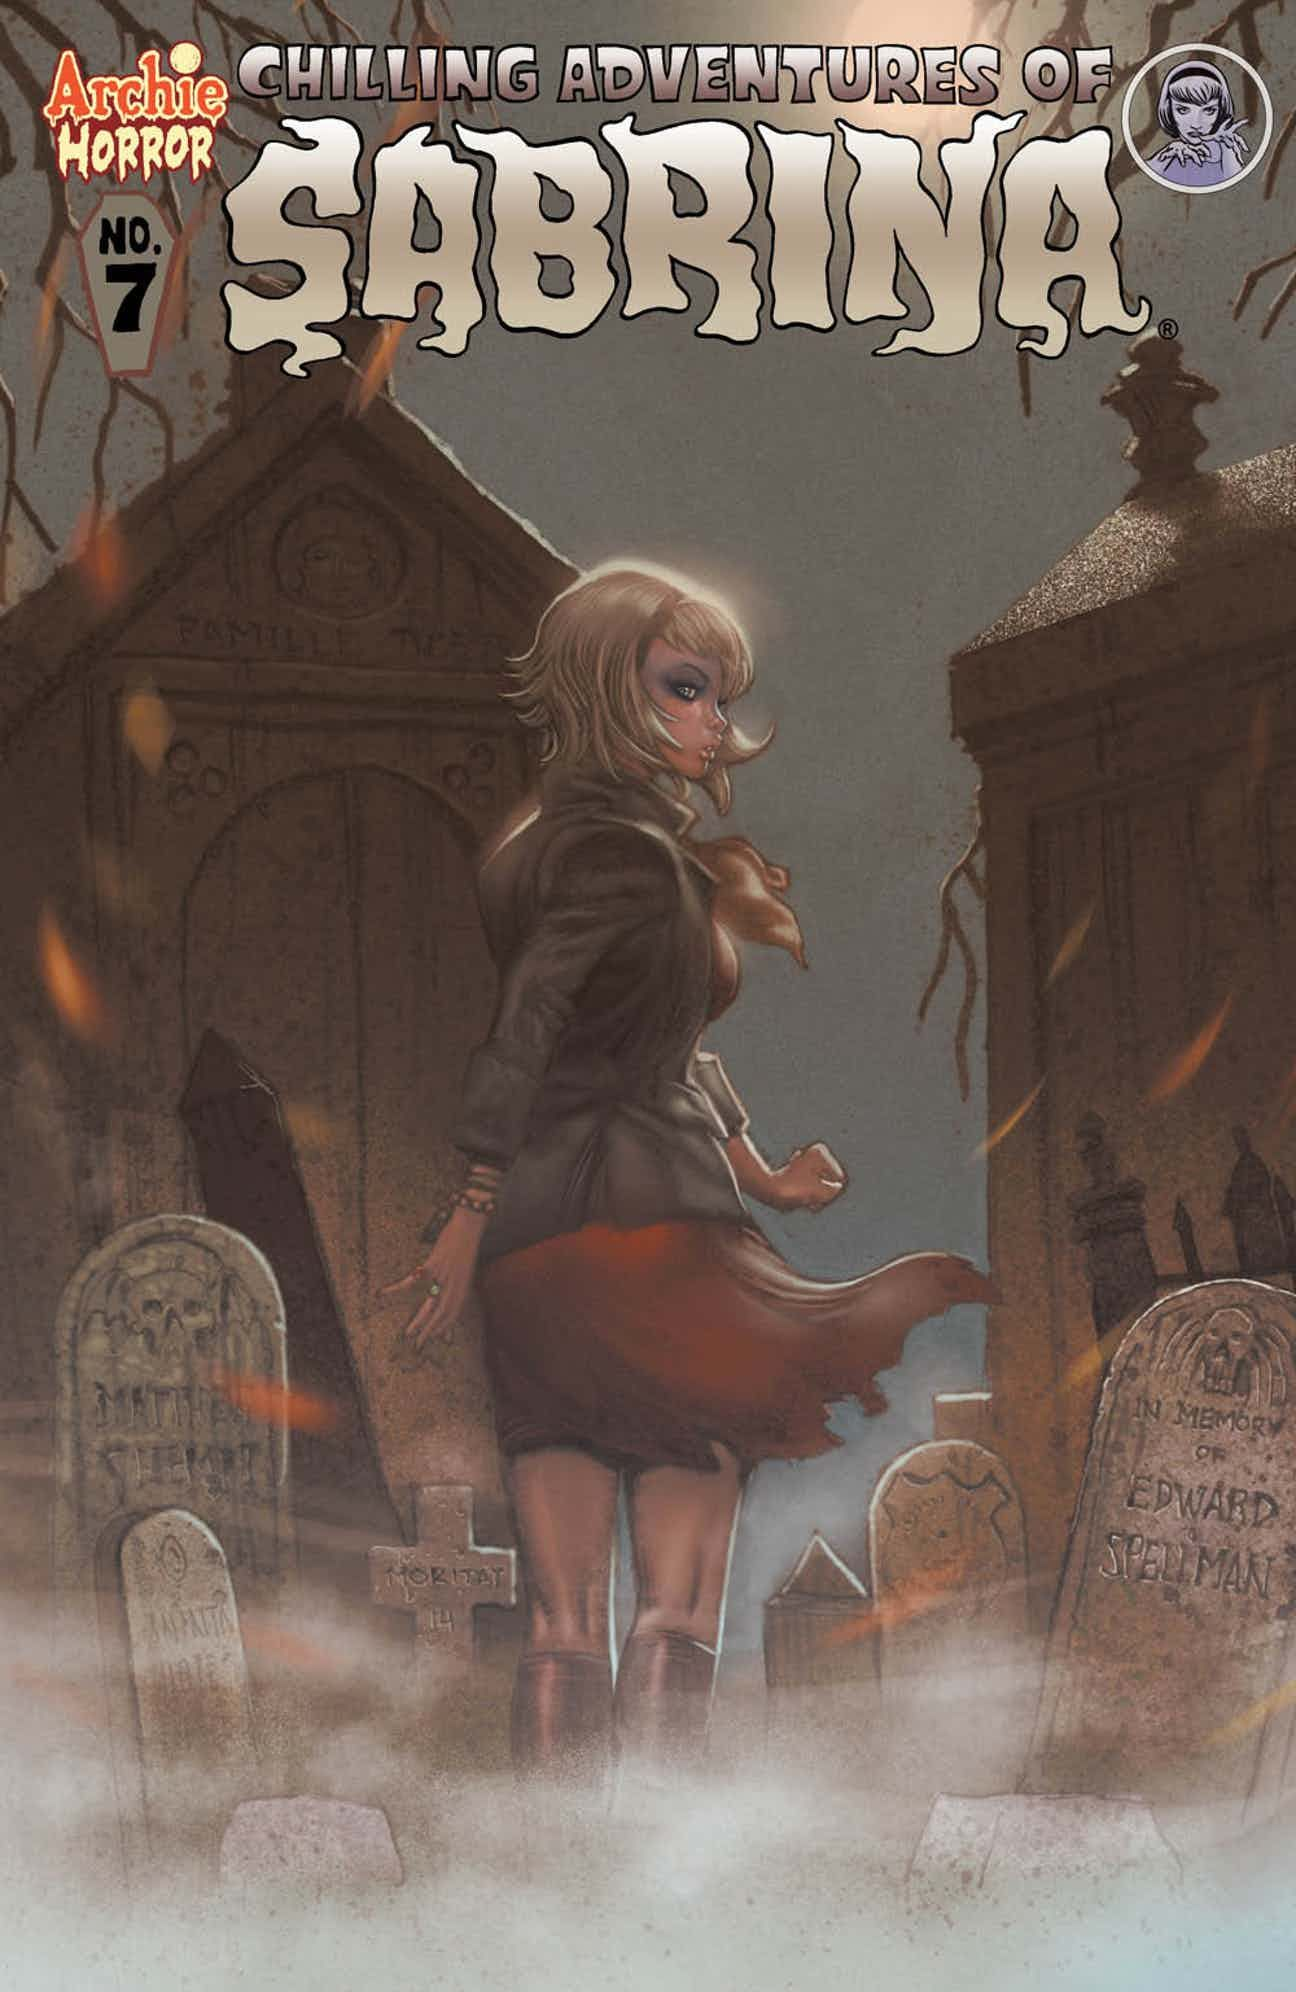 Chilling Adventures Of Sabrina To Return After Year